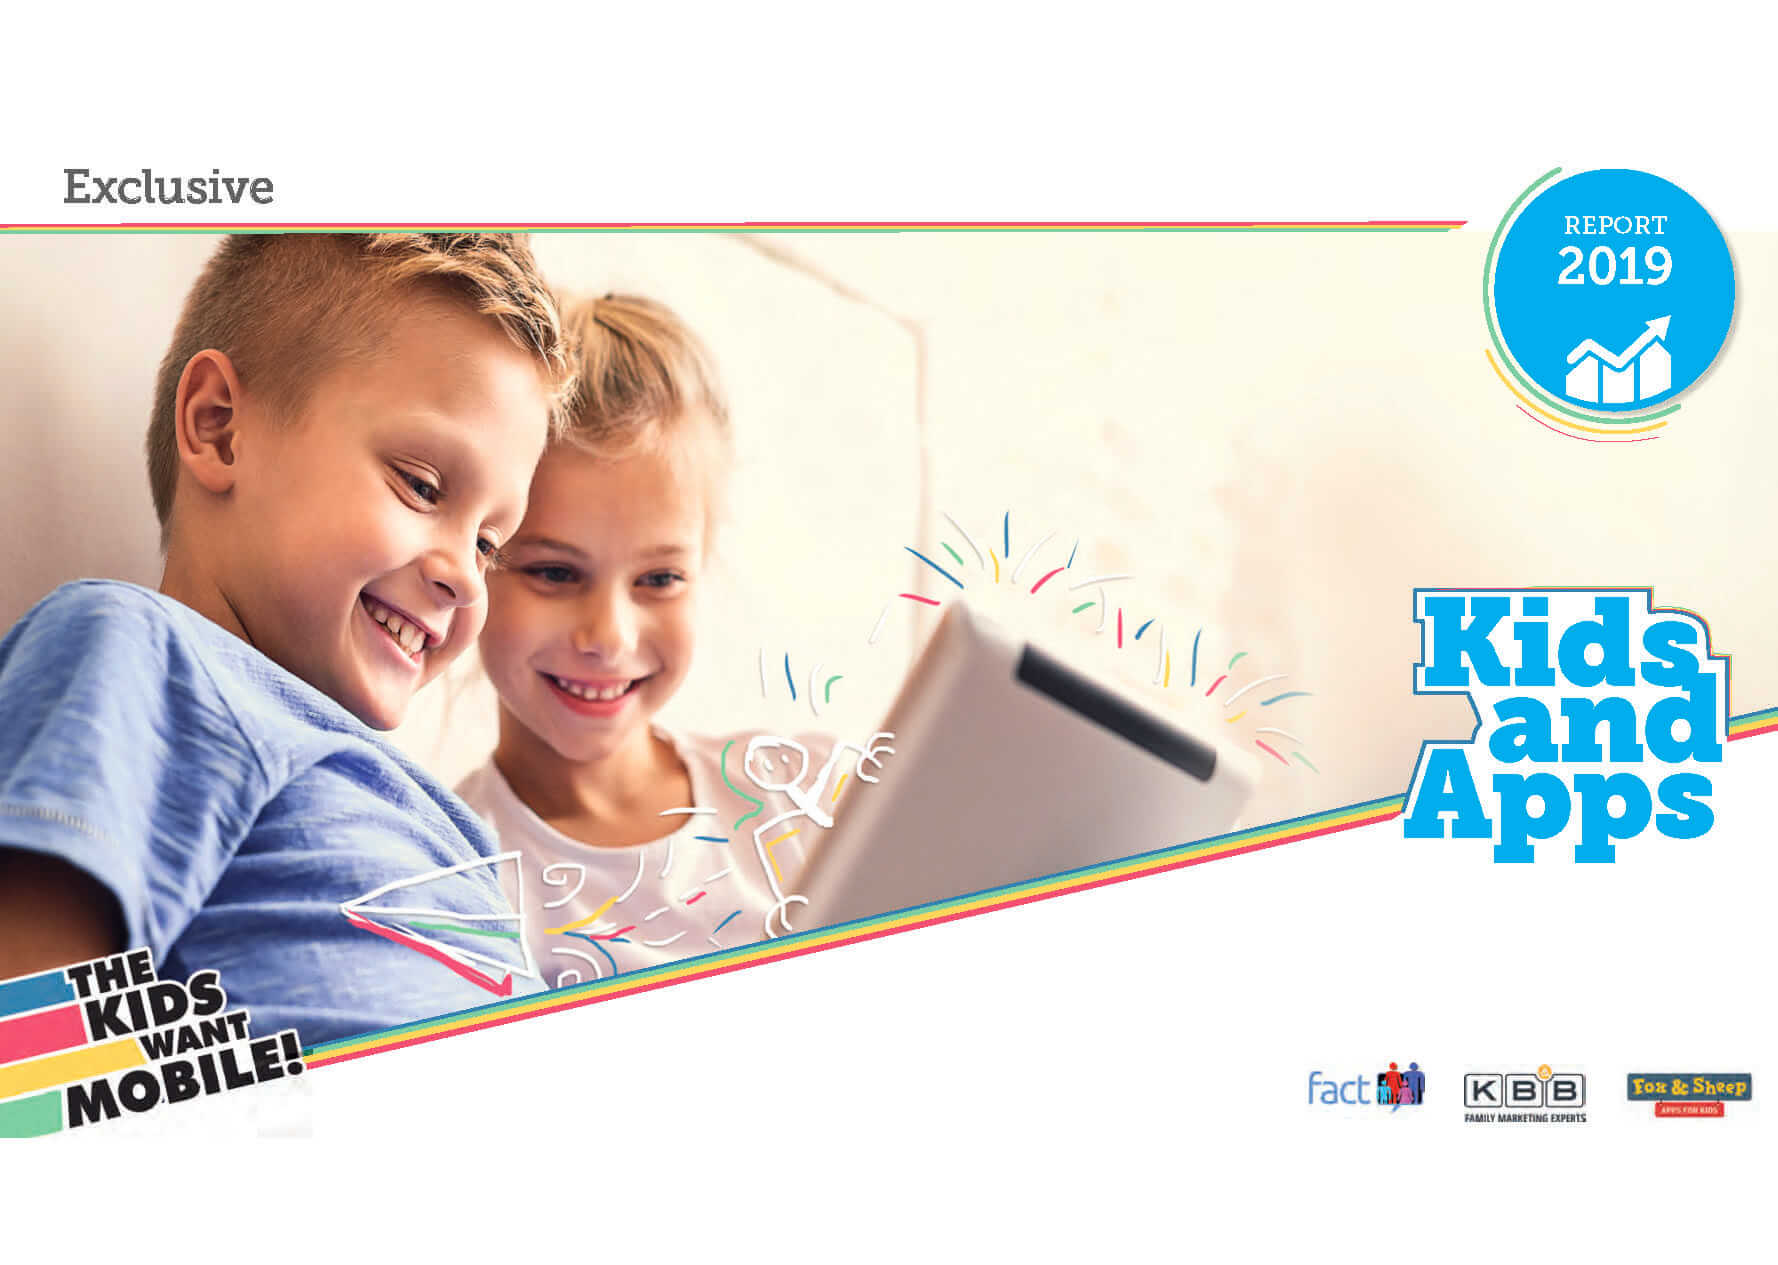 KIDS and APPS - Report 2019